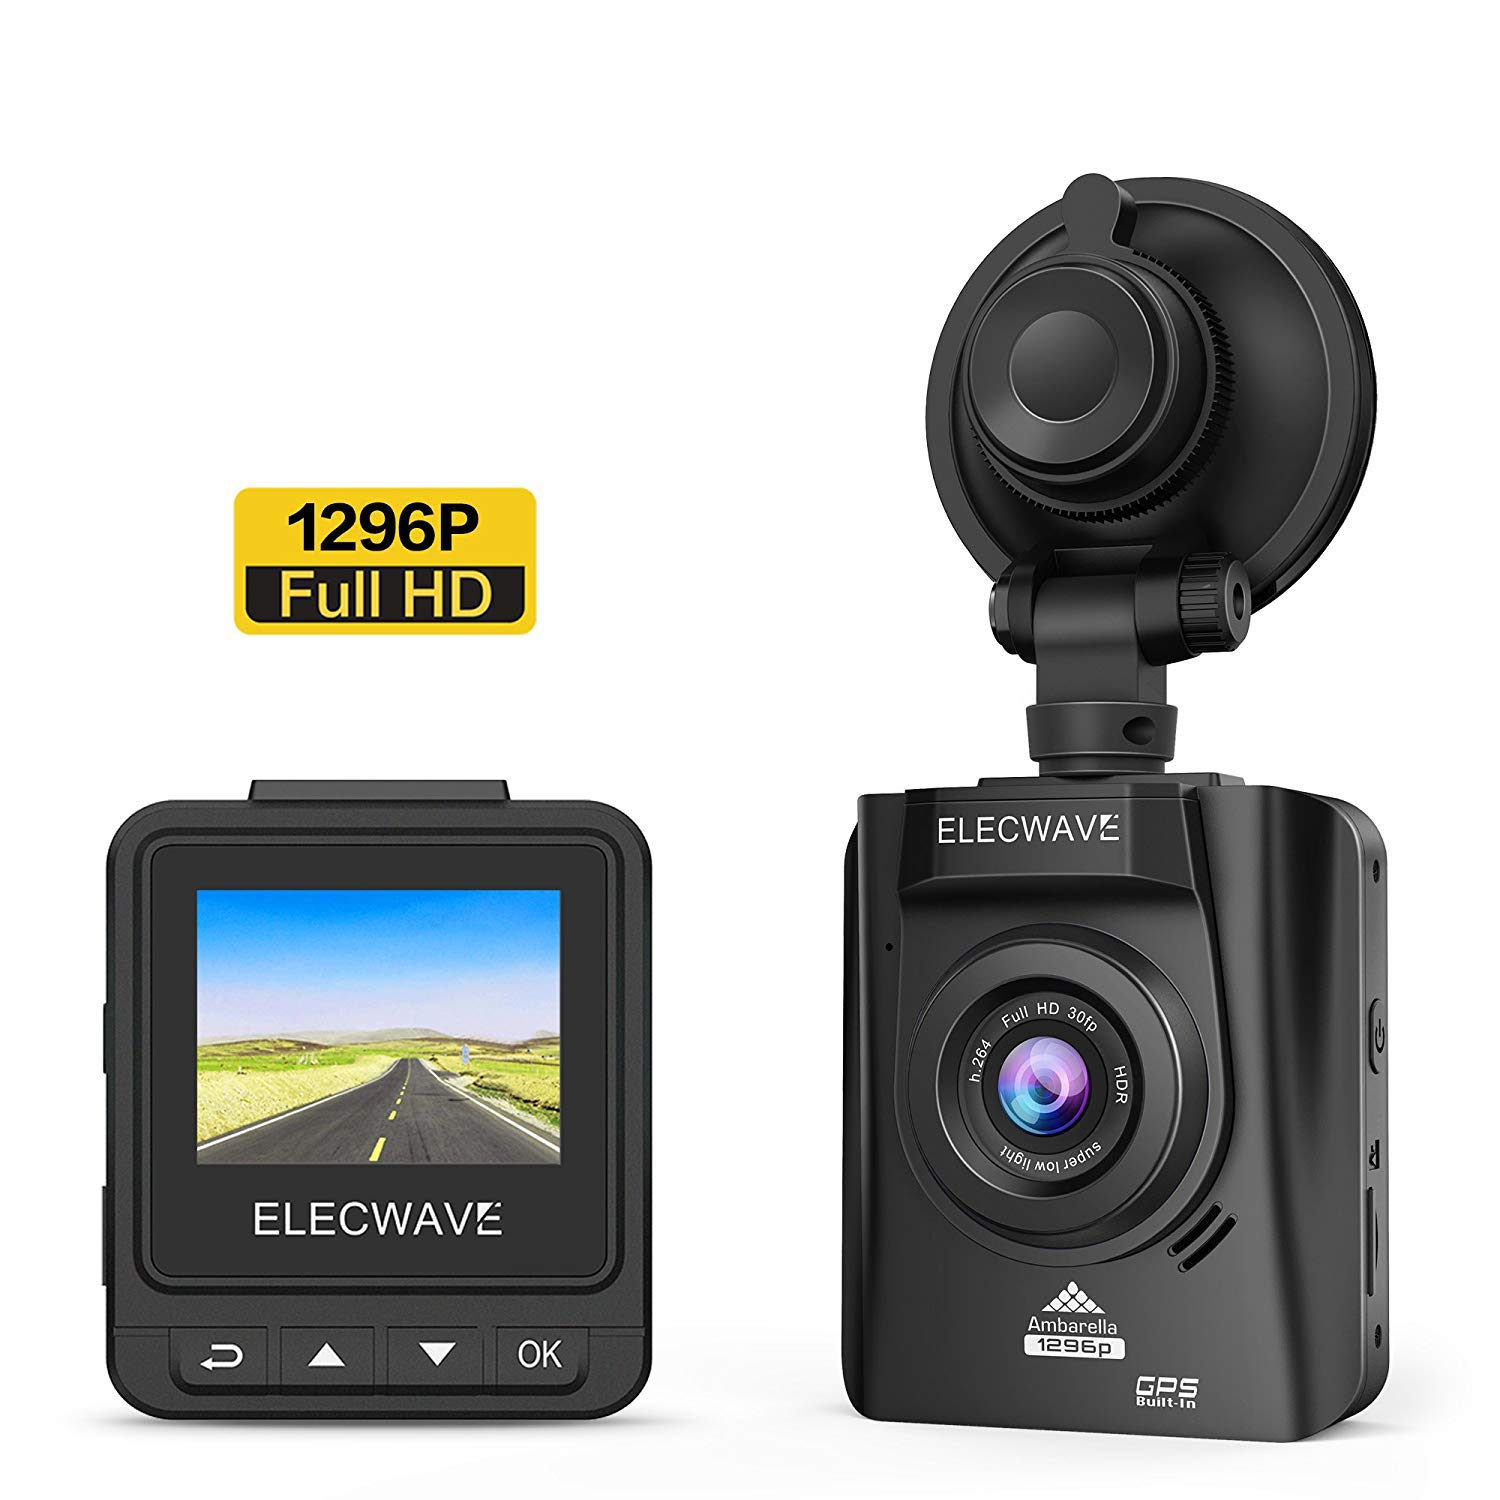 Car Dash Camera - Elecwave EW-D200-1 170° Wide Angle Full HD 1296P LCD Car DVR Camera Video Recorder with G-Sensor Night Vision Motion Detection